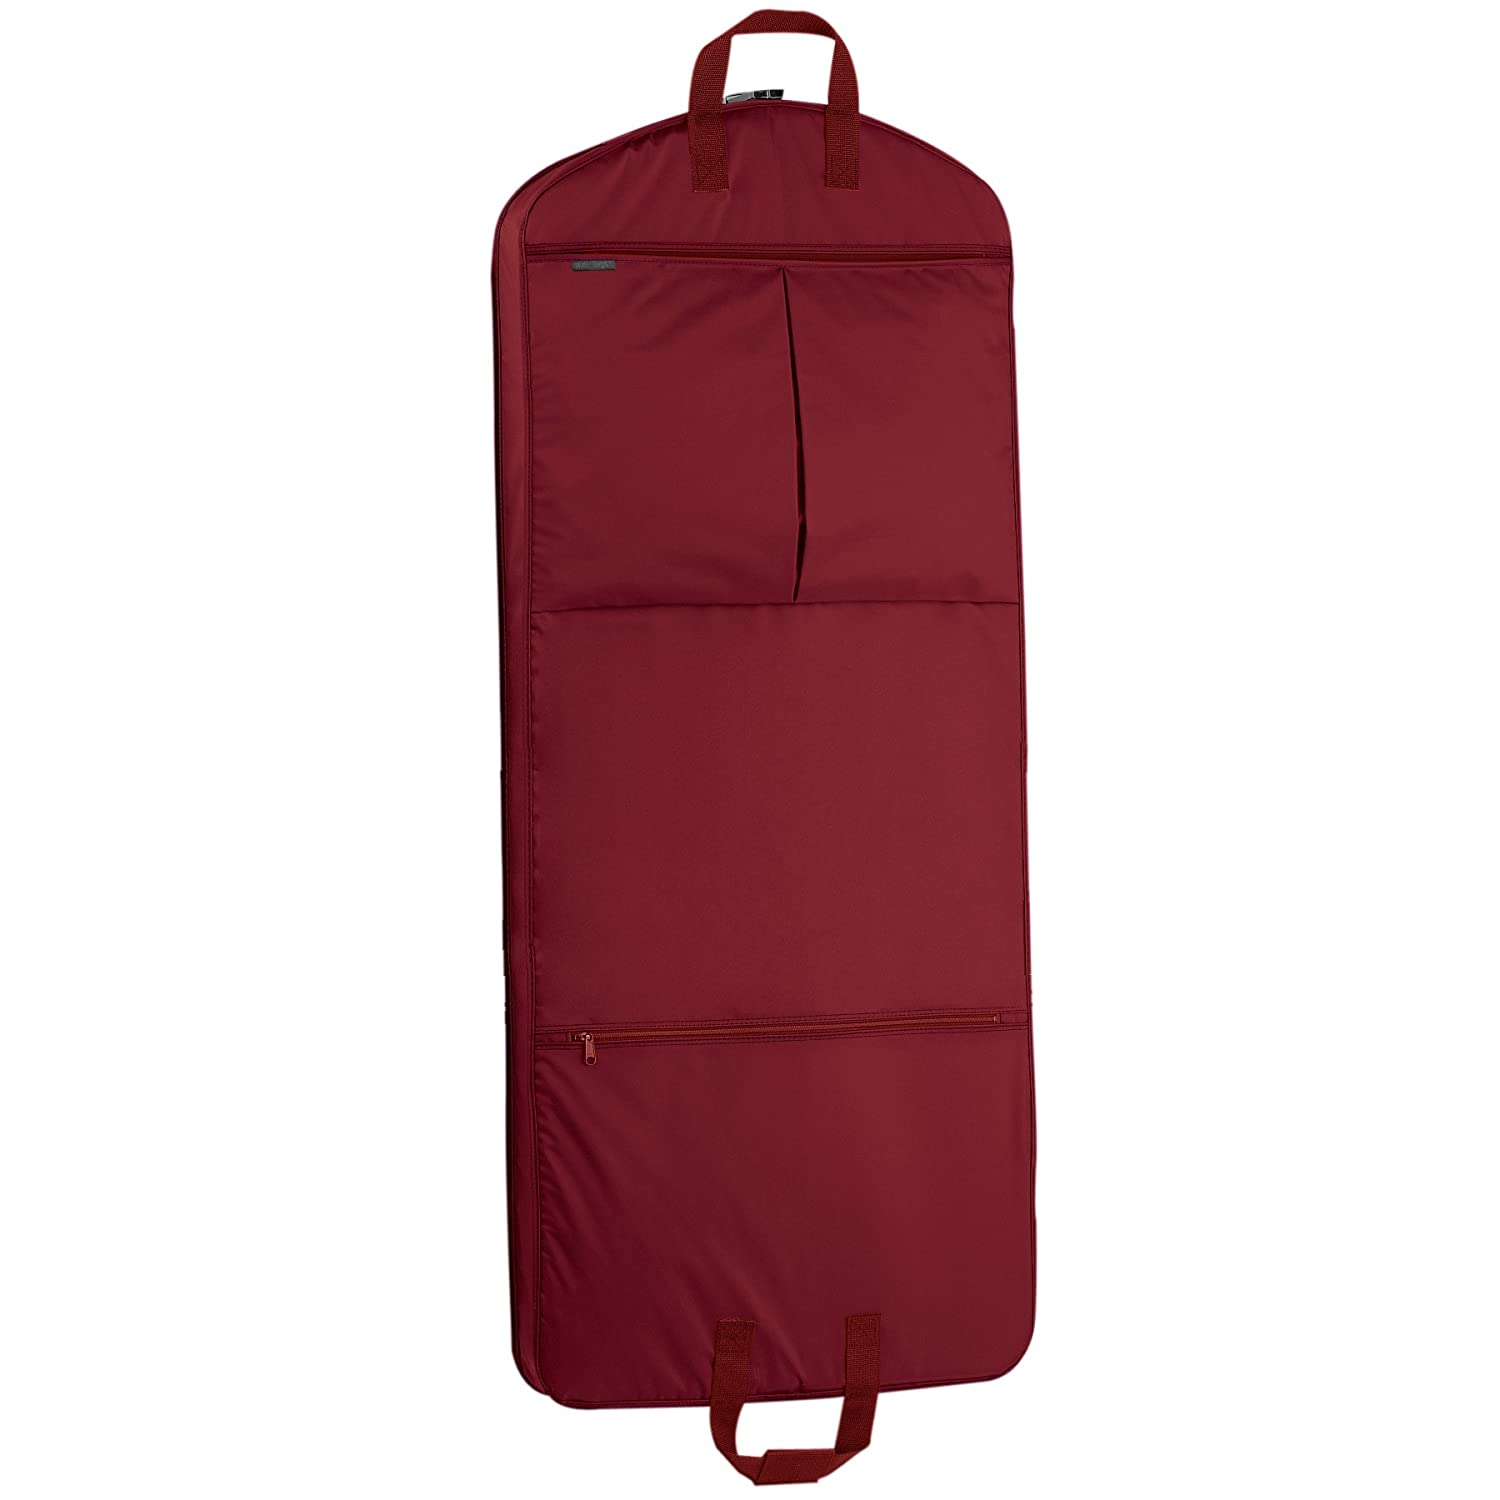 WallyBags 52-inch Dress Length, Carry-On Garment Bag with Two Pockets 855 RED